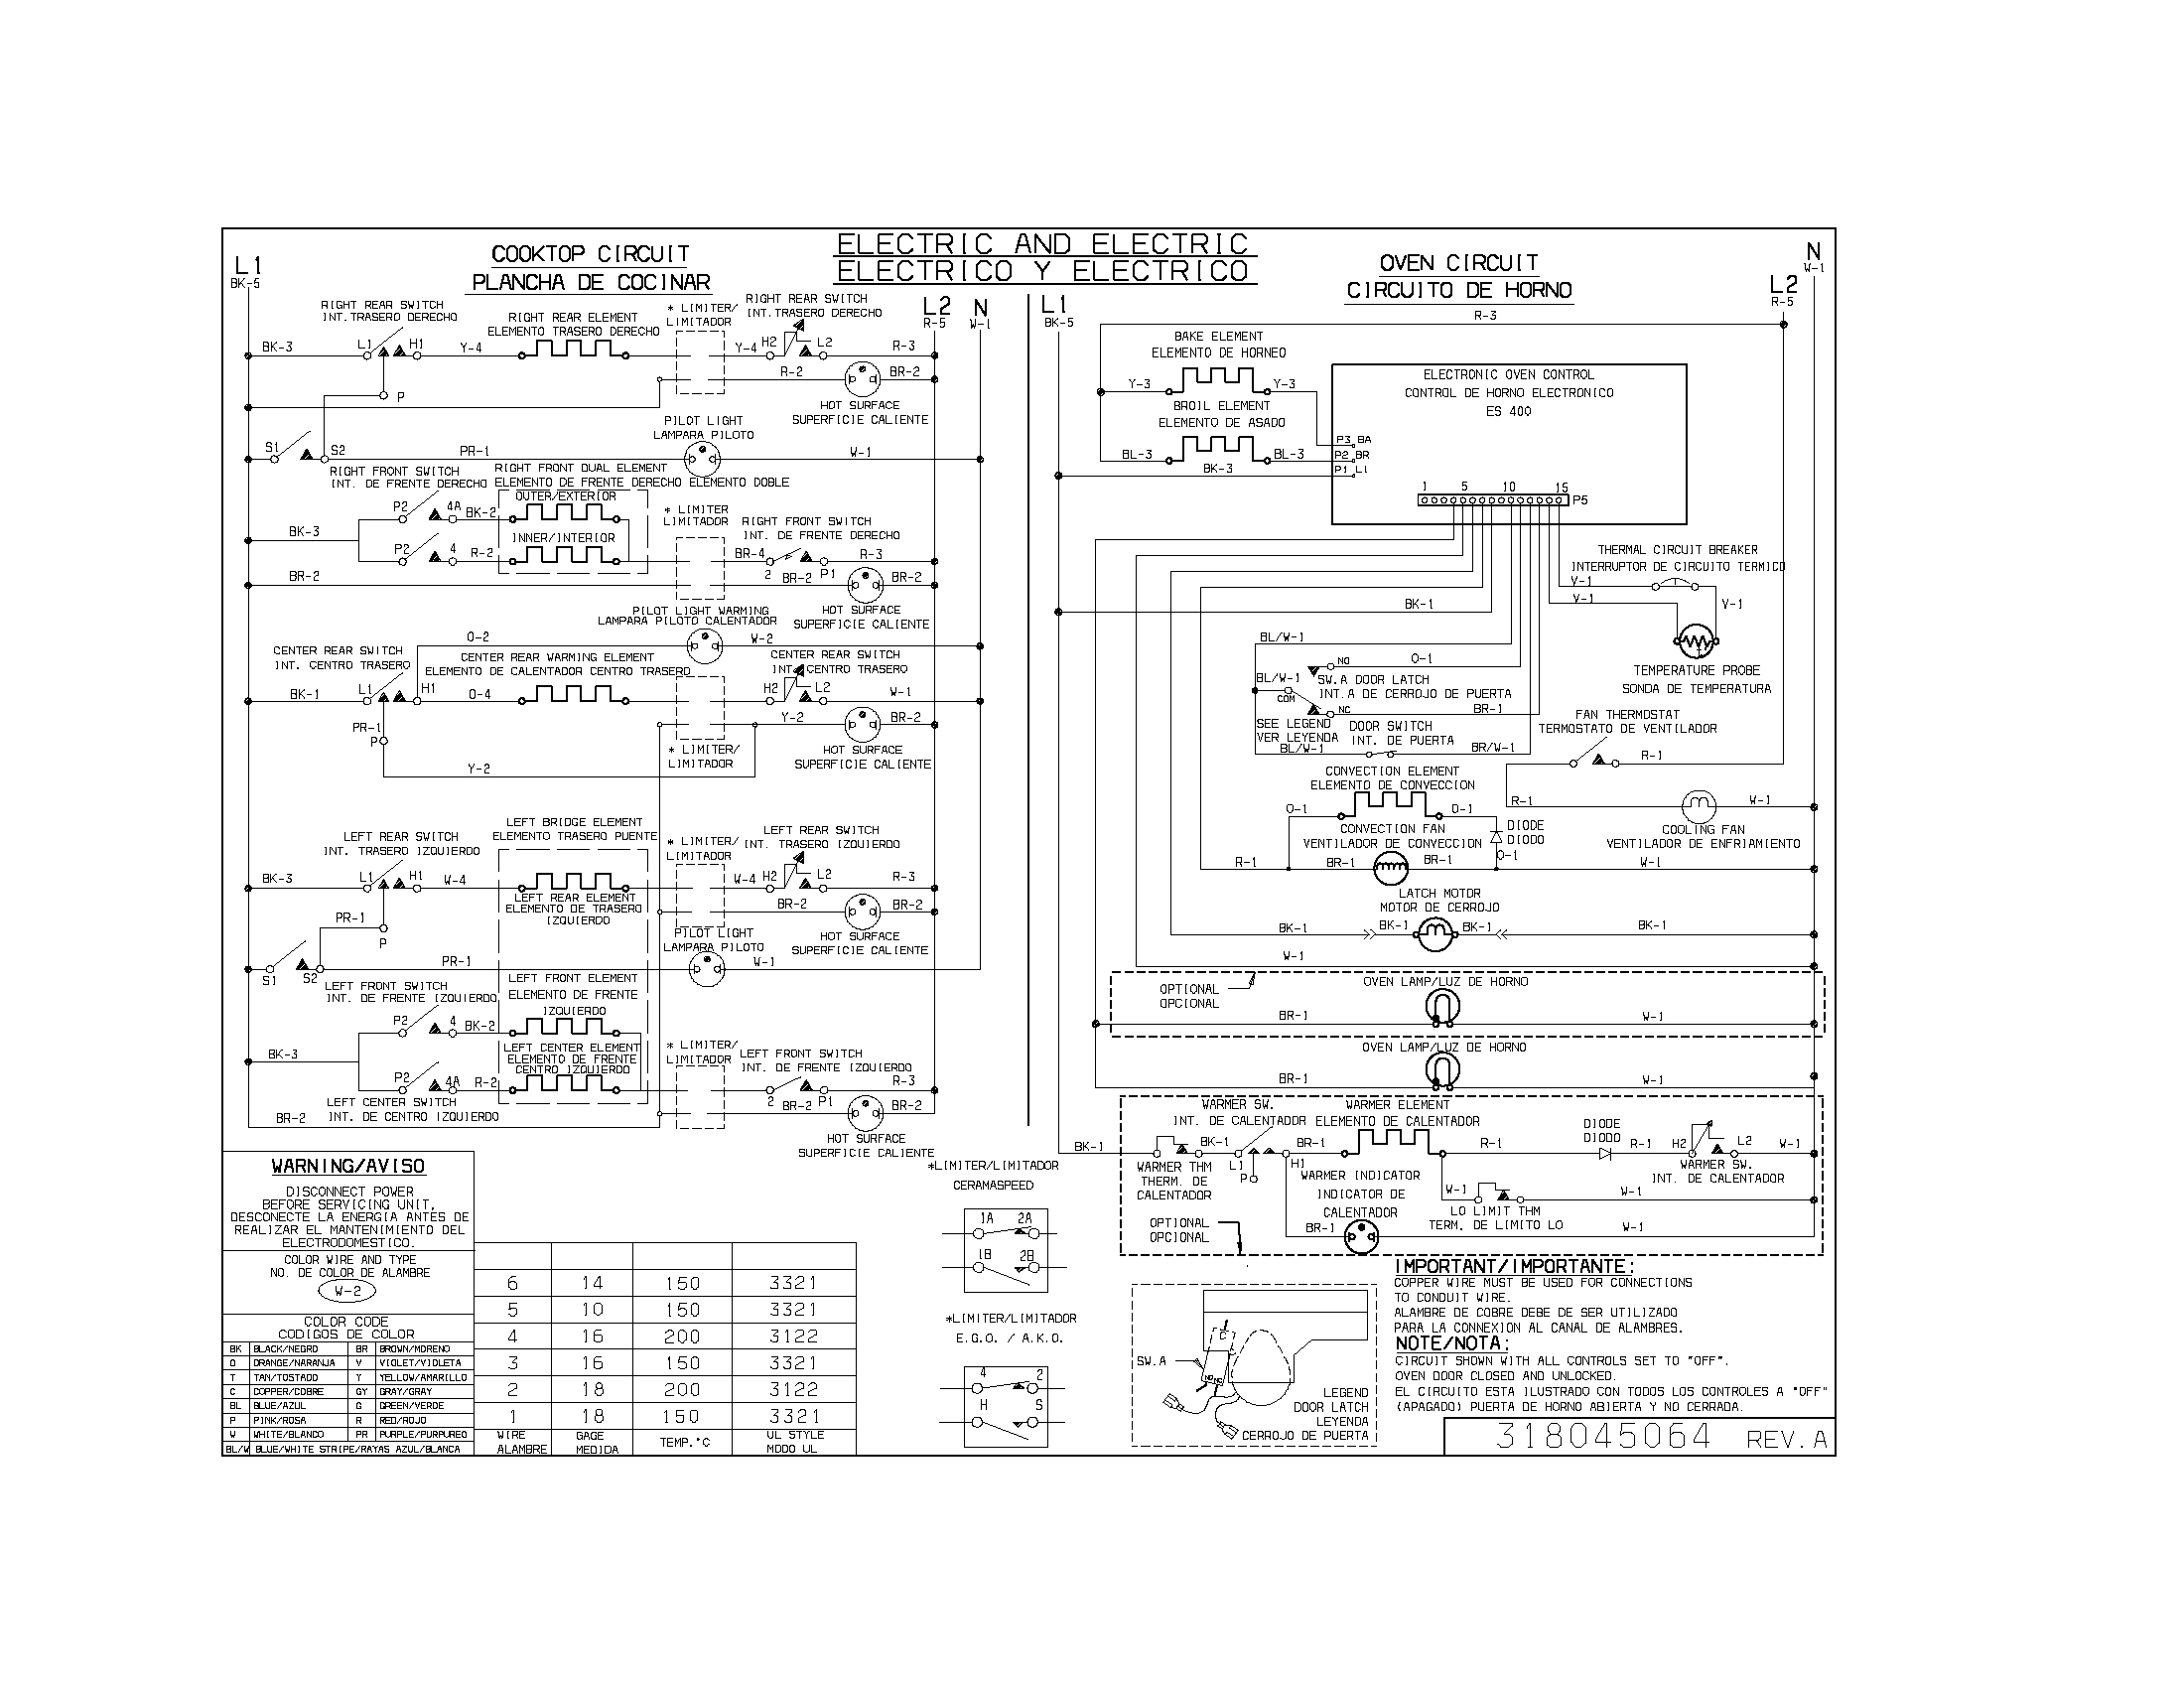 kenmore 90 series dryer parts diagram | automotive parts ... kenmore dryer wiring schematic diagrams kenmore dryer wiring harness diagram